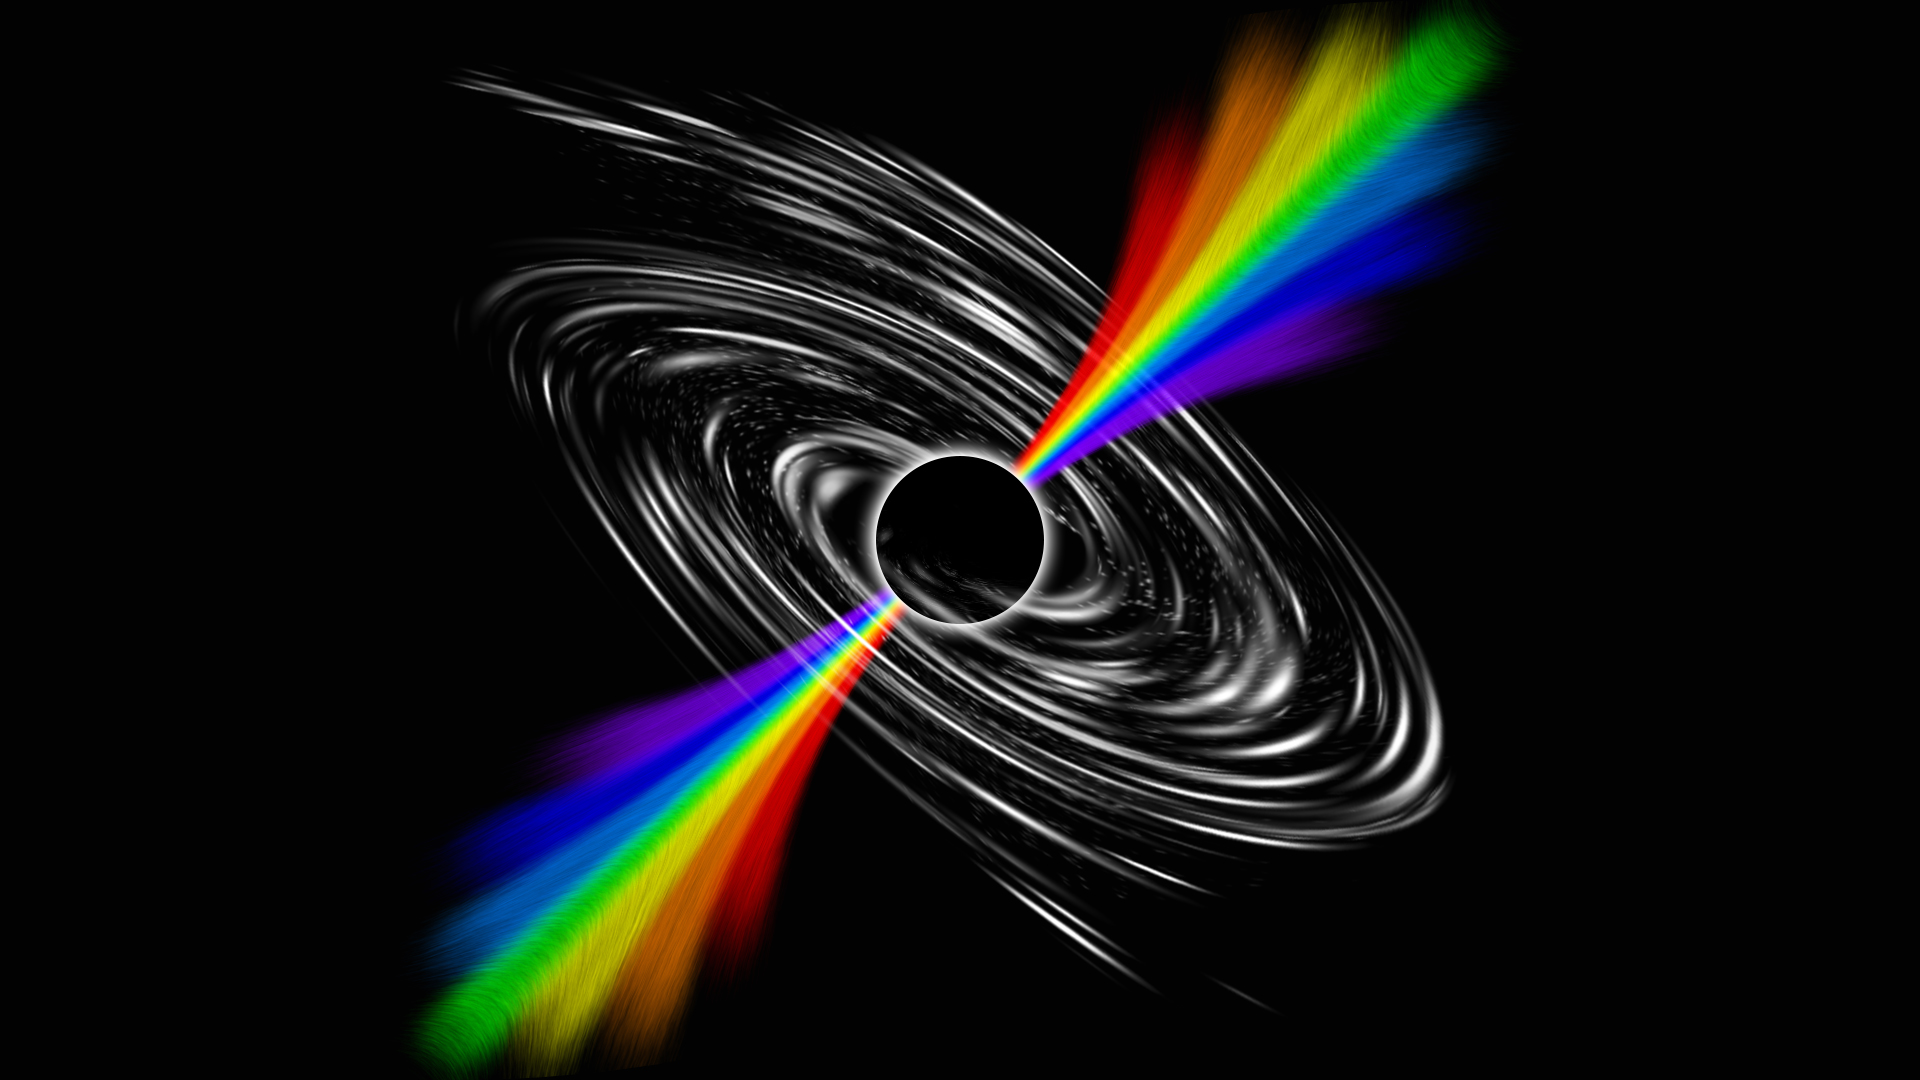 Black Hole Full HD Wallpaper and Background Image ...